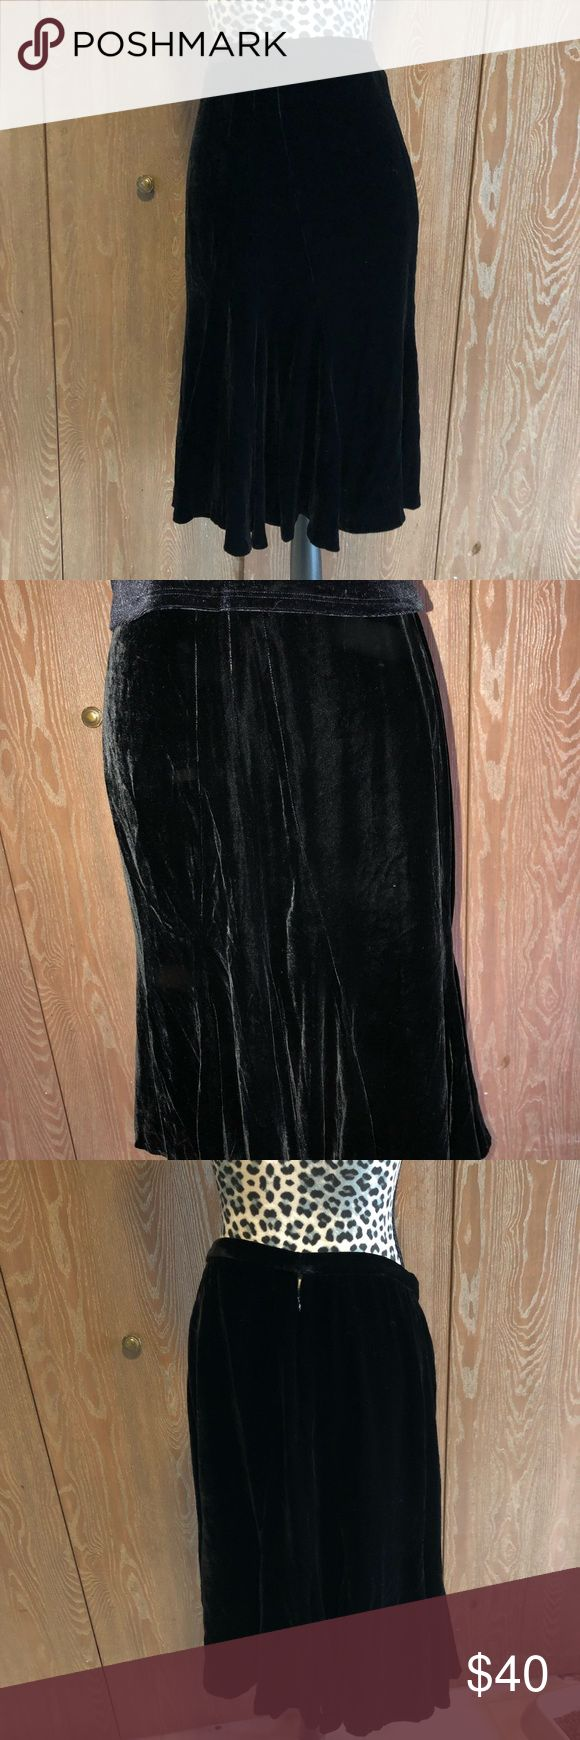 Black Velvet Jones New York Skirt Beautiful like new size 12 Jones New York black velvet skirt.  Waist measures 16 inches and it is 25 inches long.   💜All sales are going towards college tuition for the spring semester! I am majoring in Elementary Education and I love it! Thanks so much for helping me reach my goal of becoming a Kindergarten teacher!💙 Jones New York Skirts